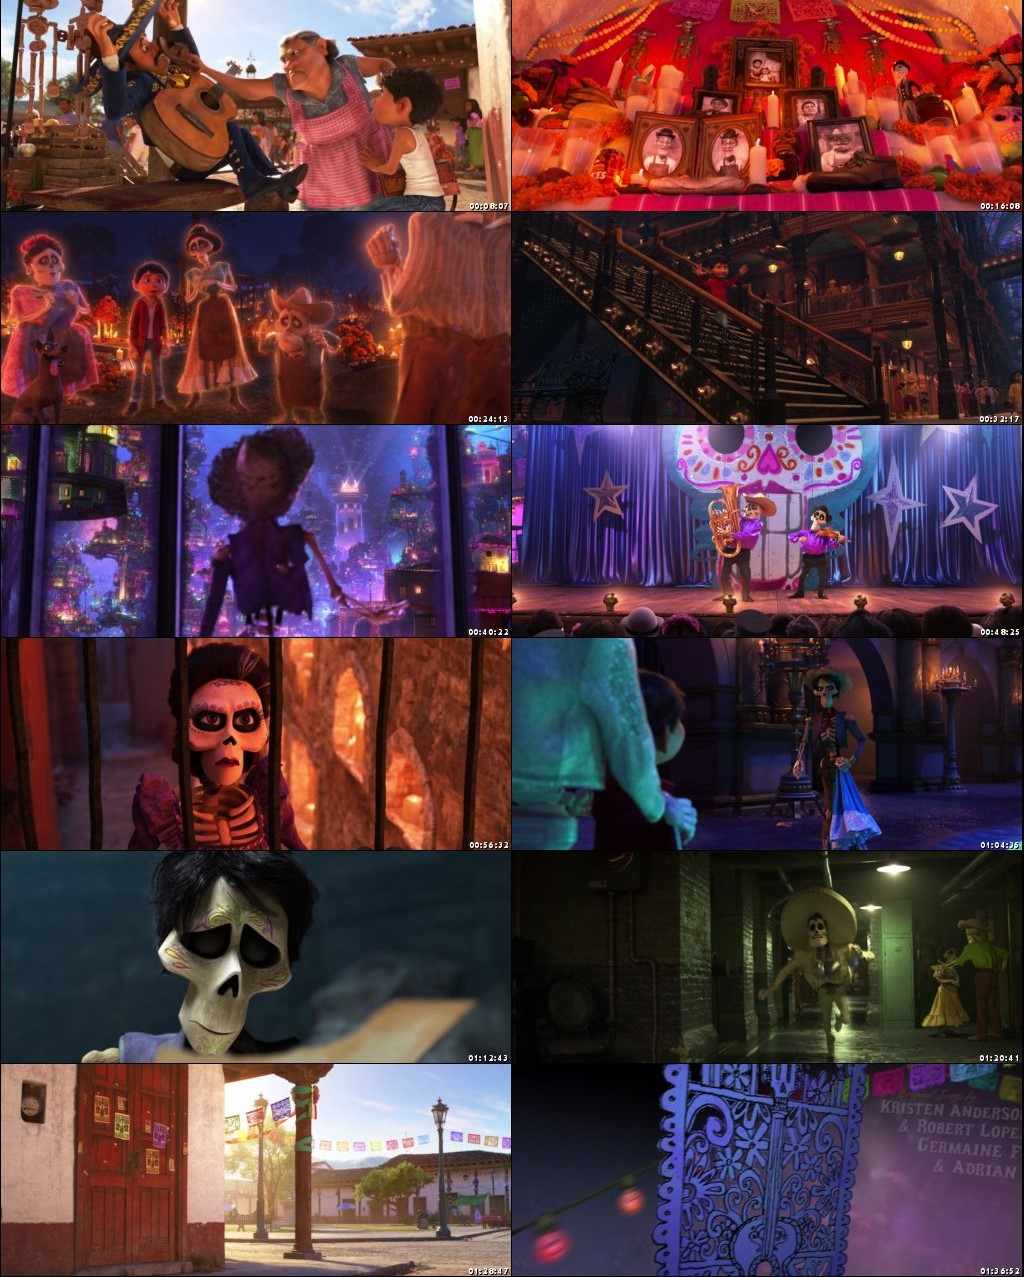 Coco 2017 Dual Audio [Hindi - English] 720p BluRay mkv movie free Download screenshots (movie pictures)